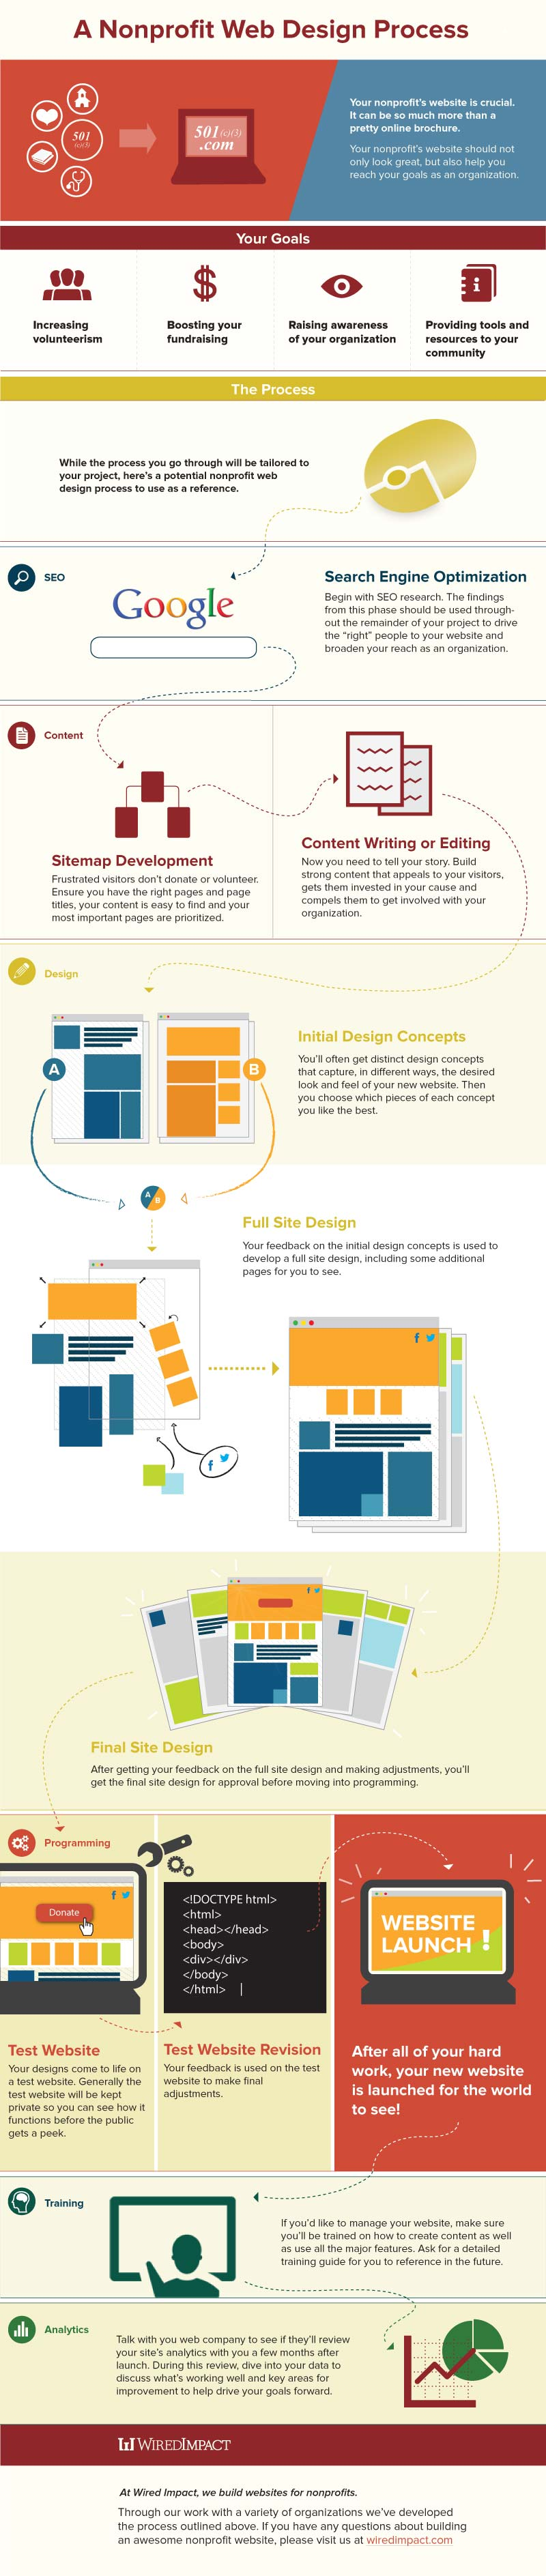 Nonprofit Website Design Process Infographic from Wired Impact